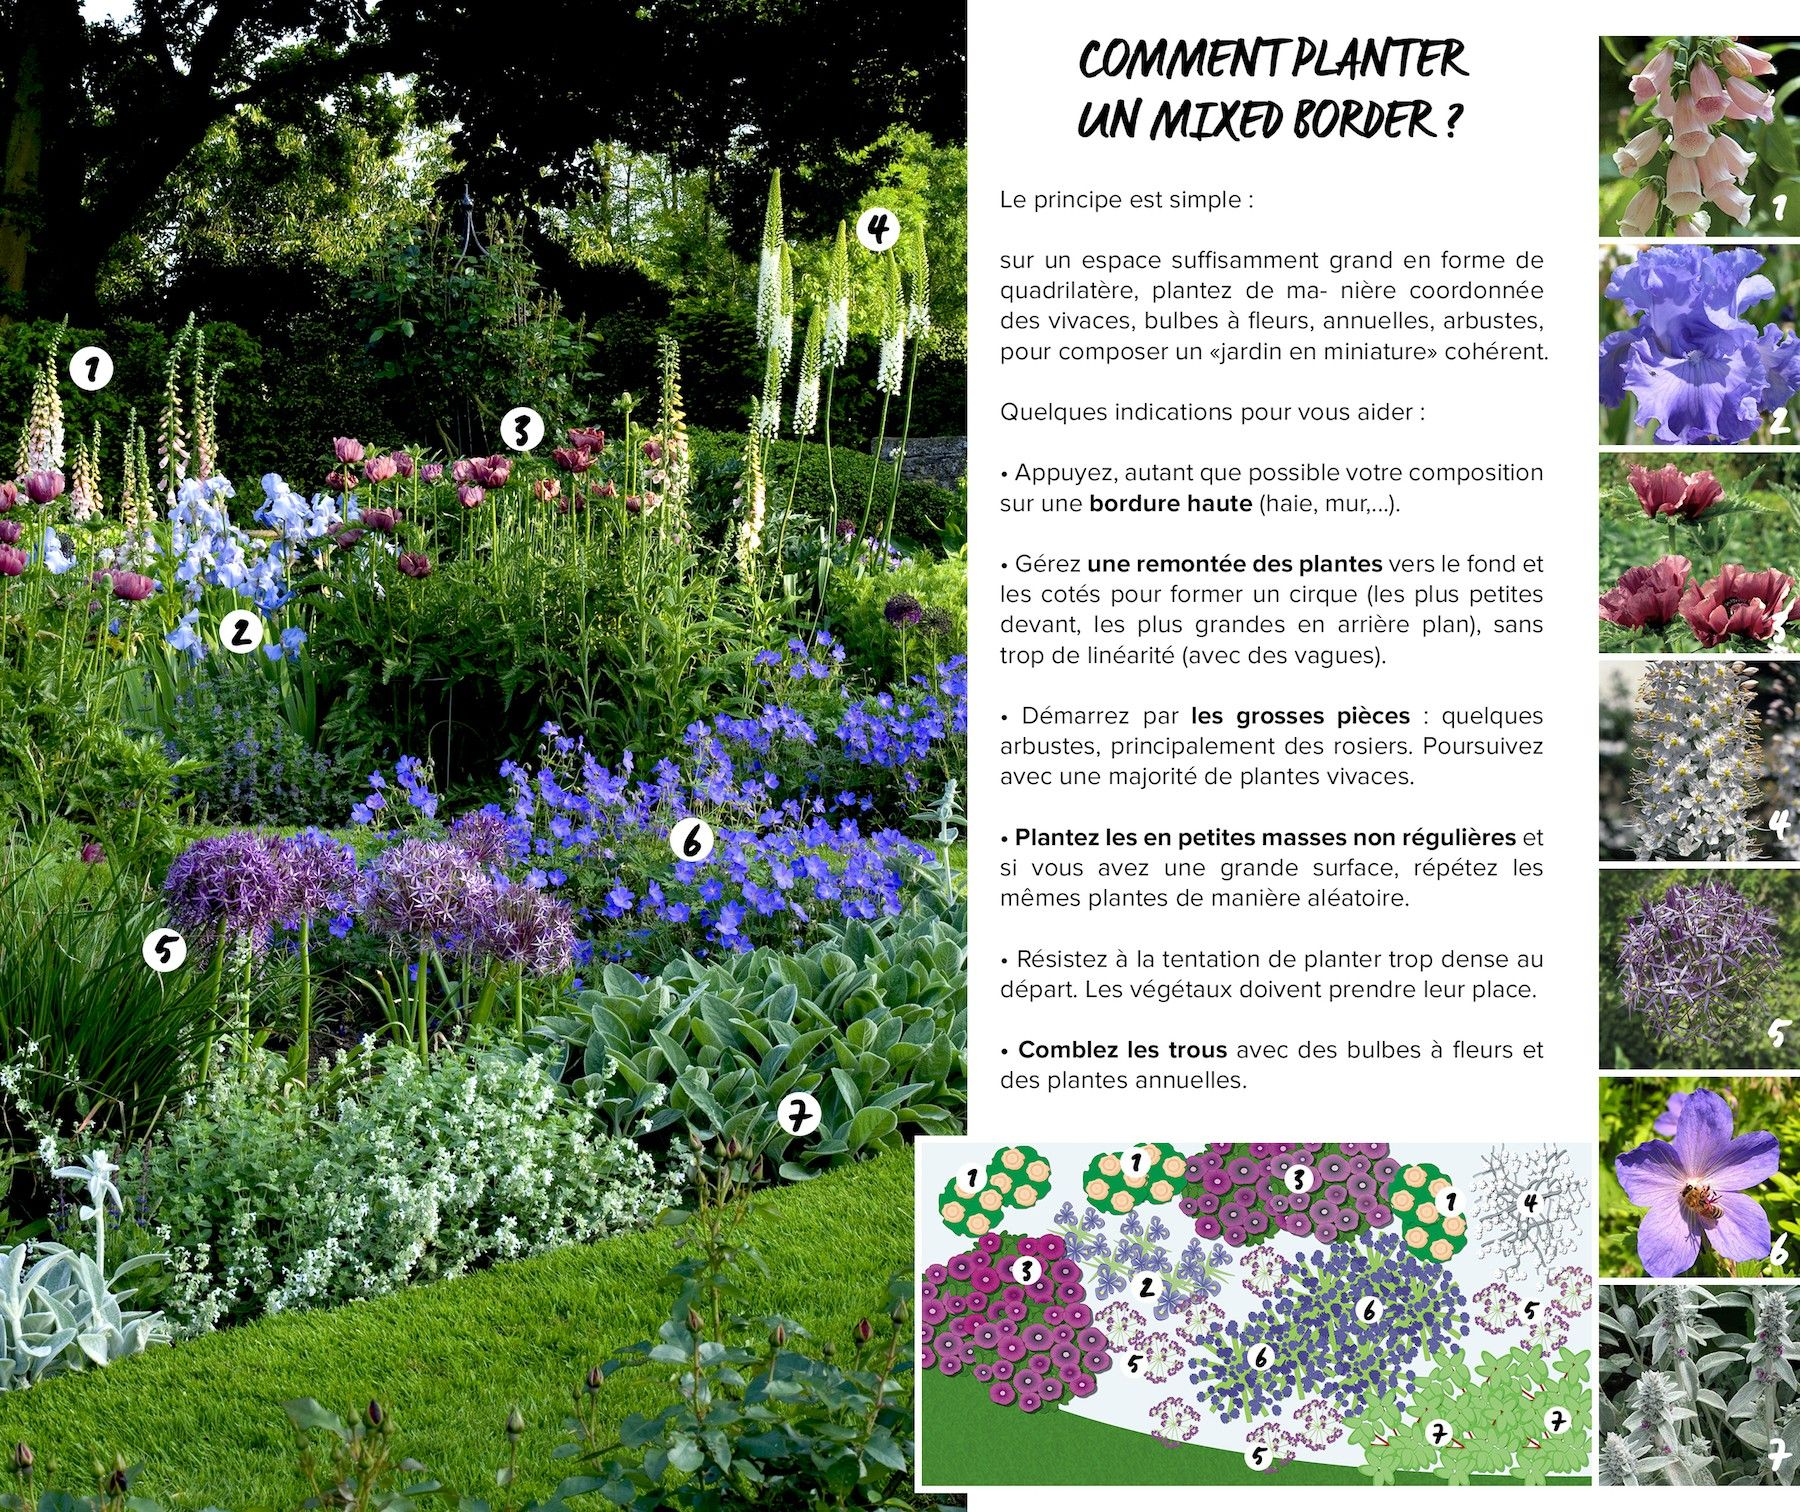 Comment planter un mixed border jardin potager future for Jardin anglais mixed border